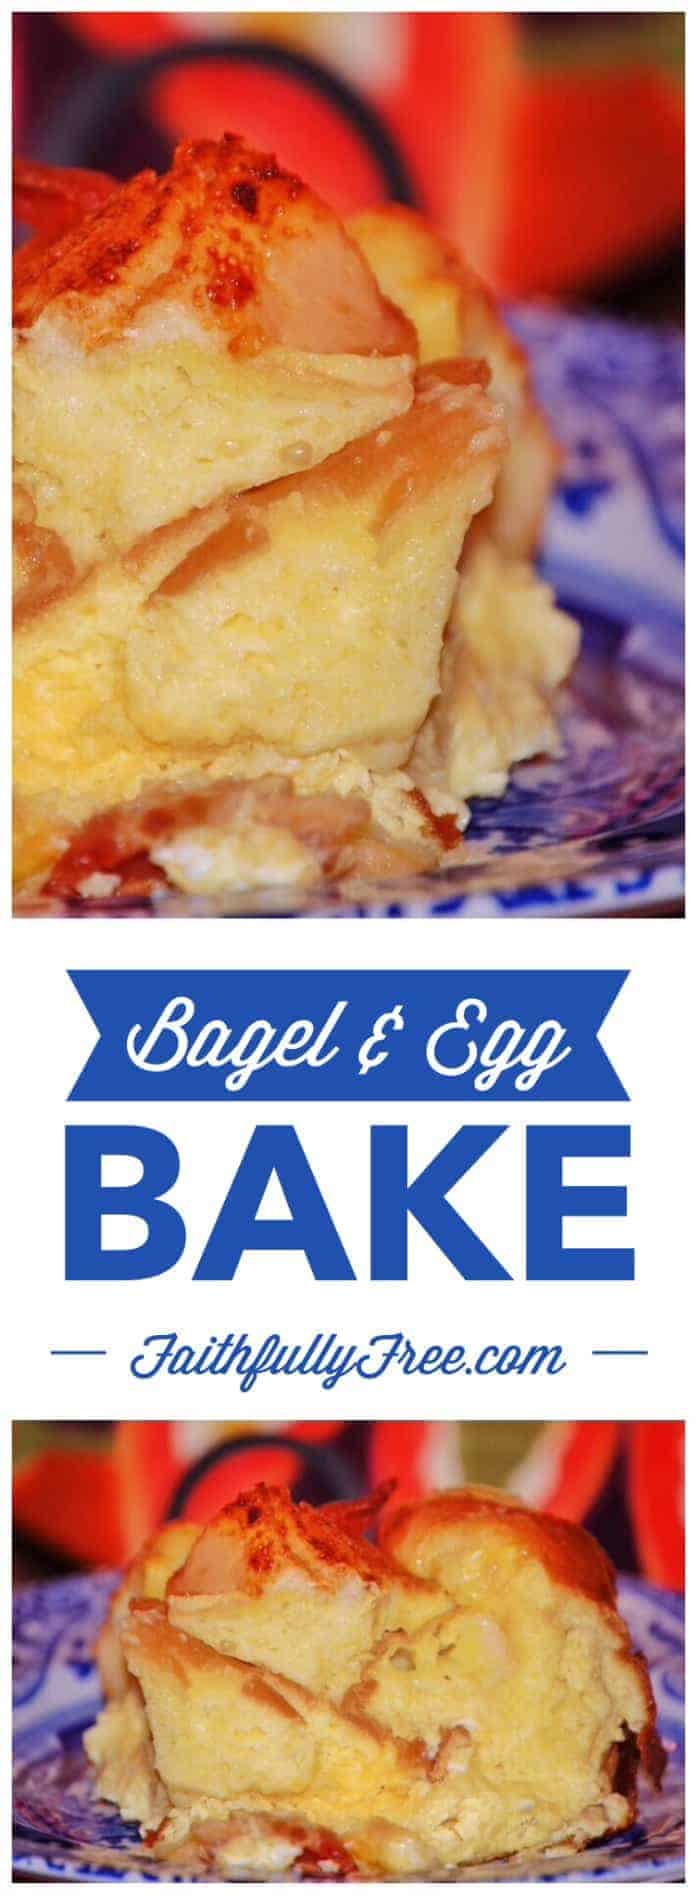 Amazing Bagel Egg Bake Recipe